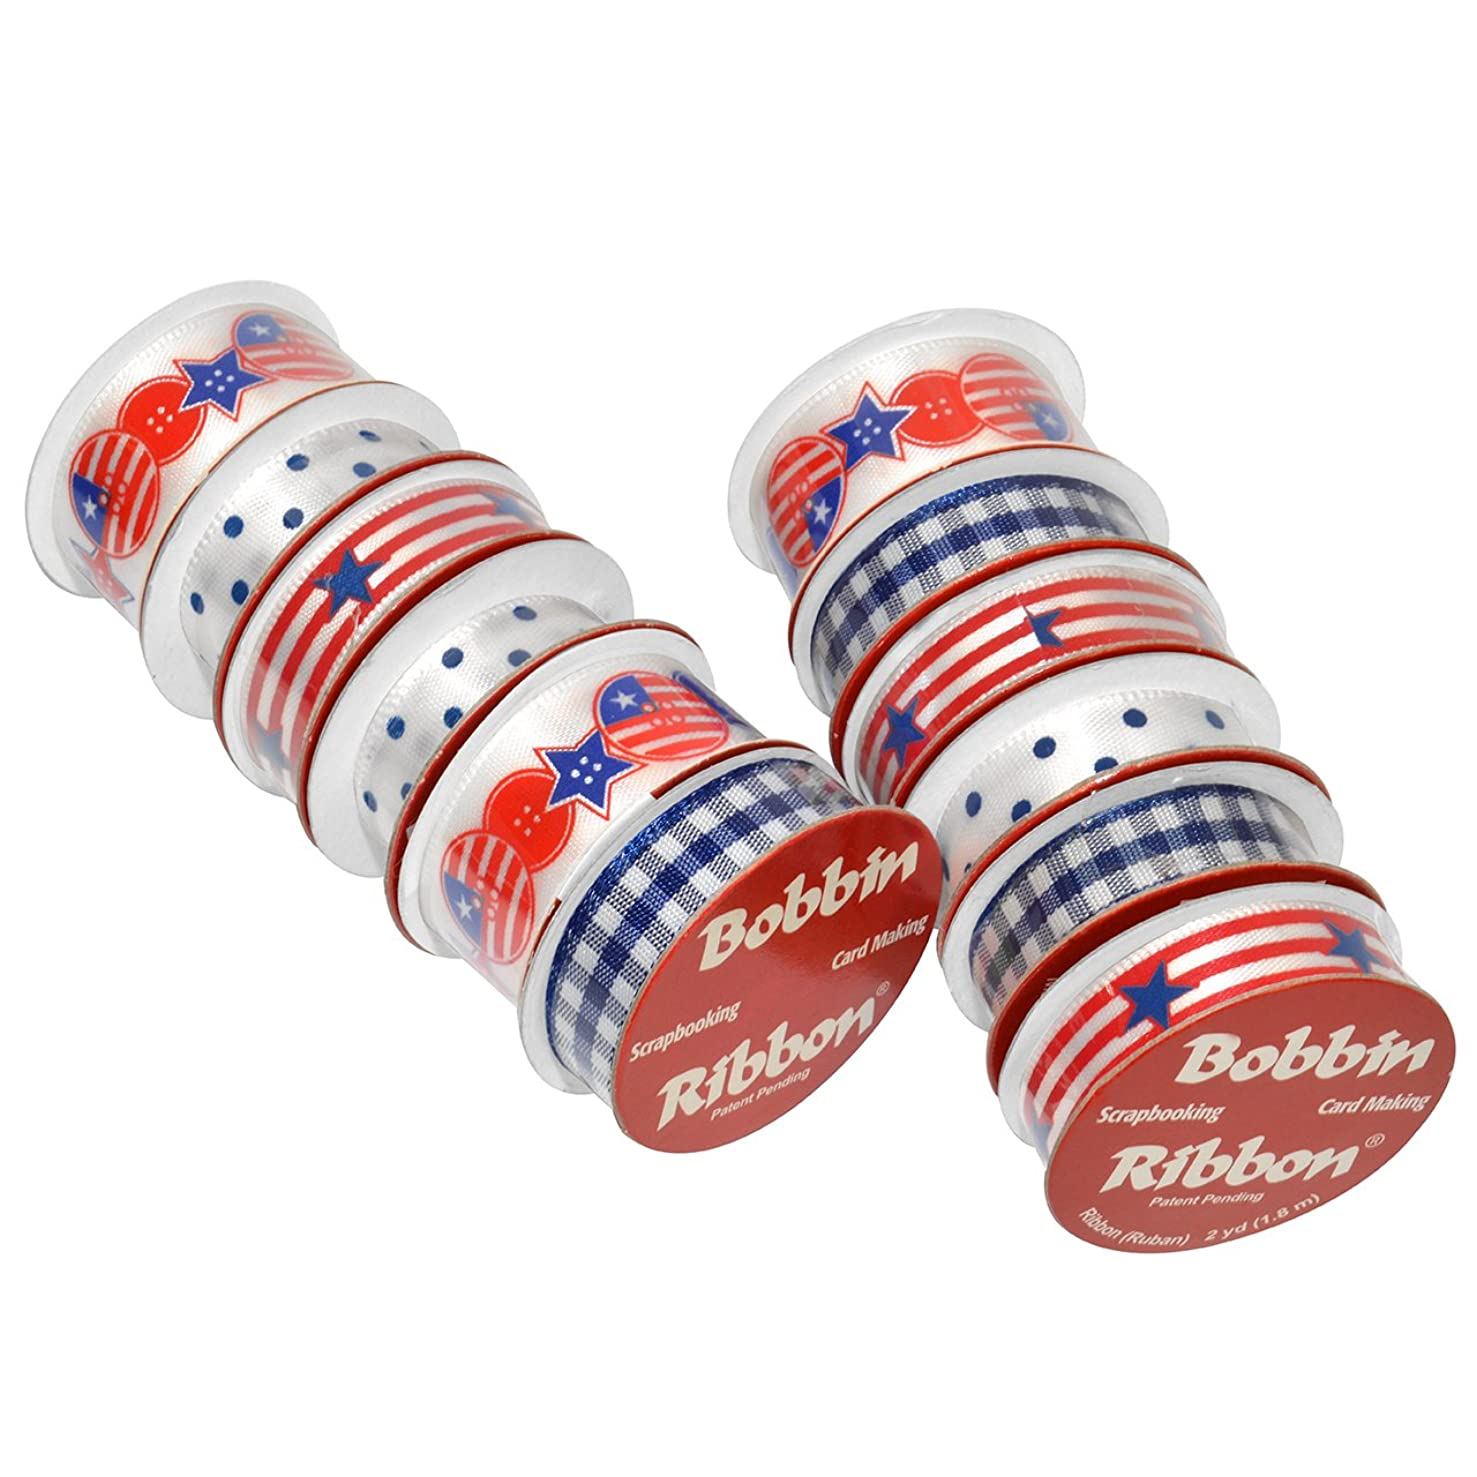 Morex Ribbon American Pride Bobbin Variety 12 Pack, Polyester, 3/8 inch by 6 feet Mixed, Red/White/Blue, Item 900/12-1212, 3/8